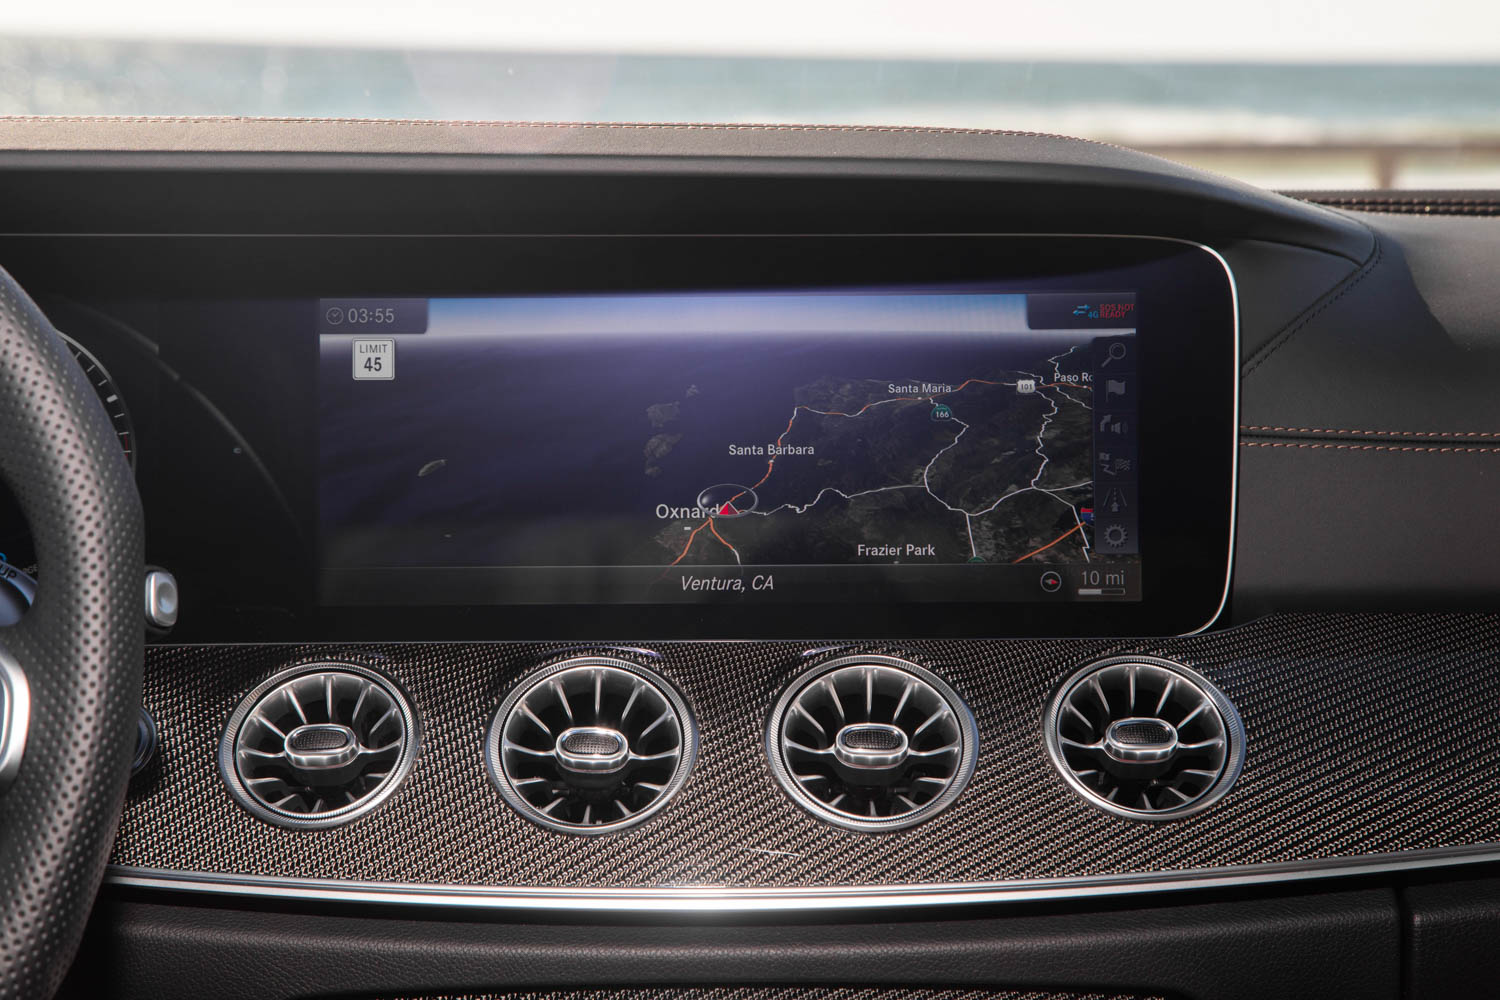 2019 Mercedes-AMG CLS53 entertainment screen